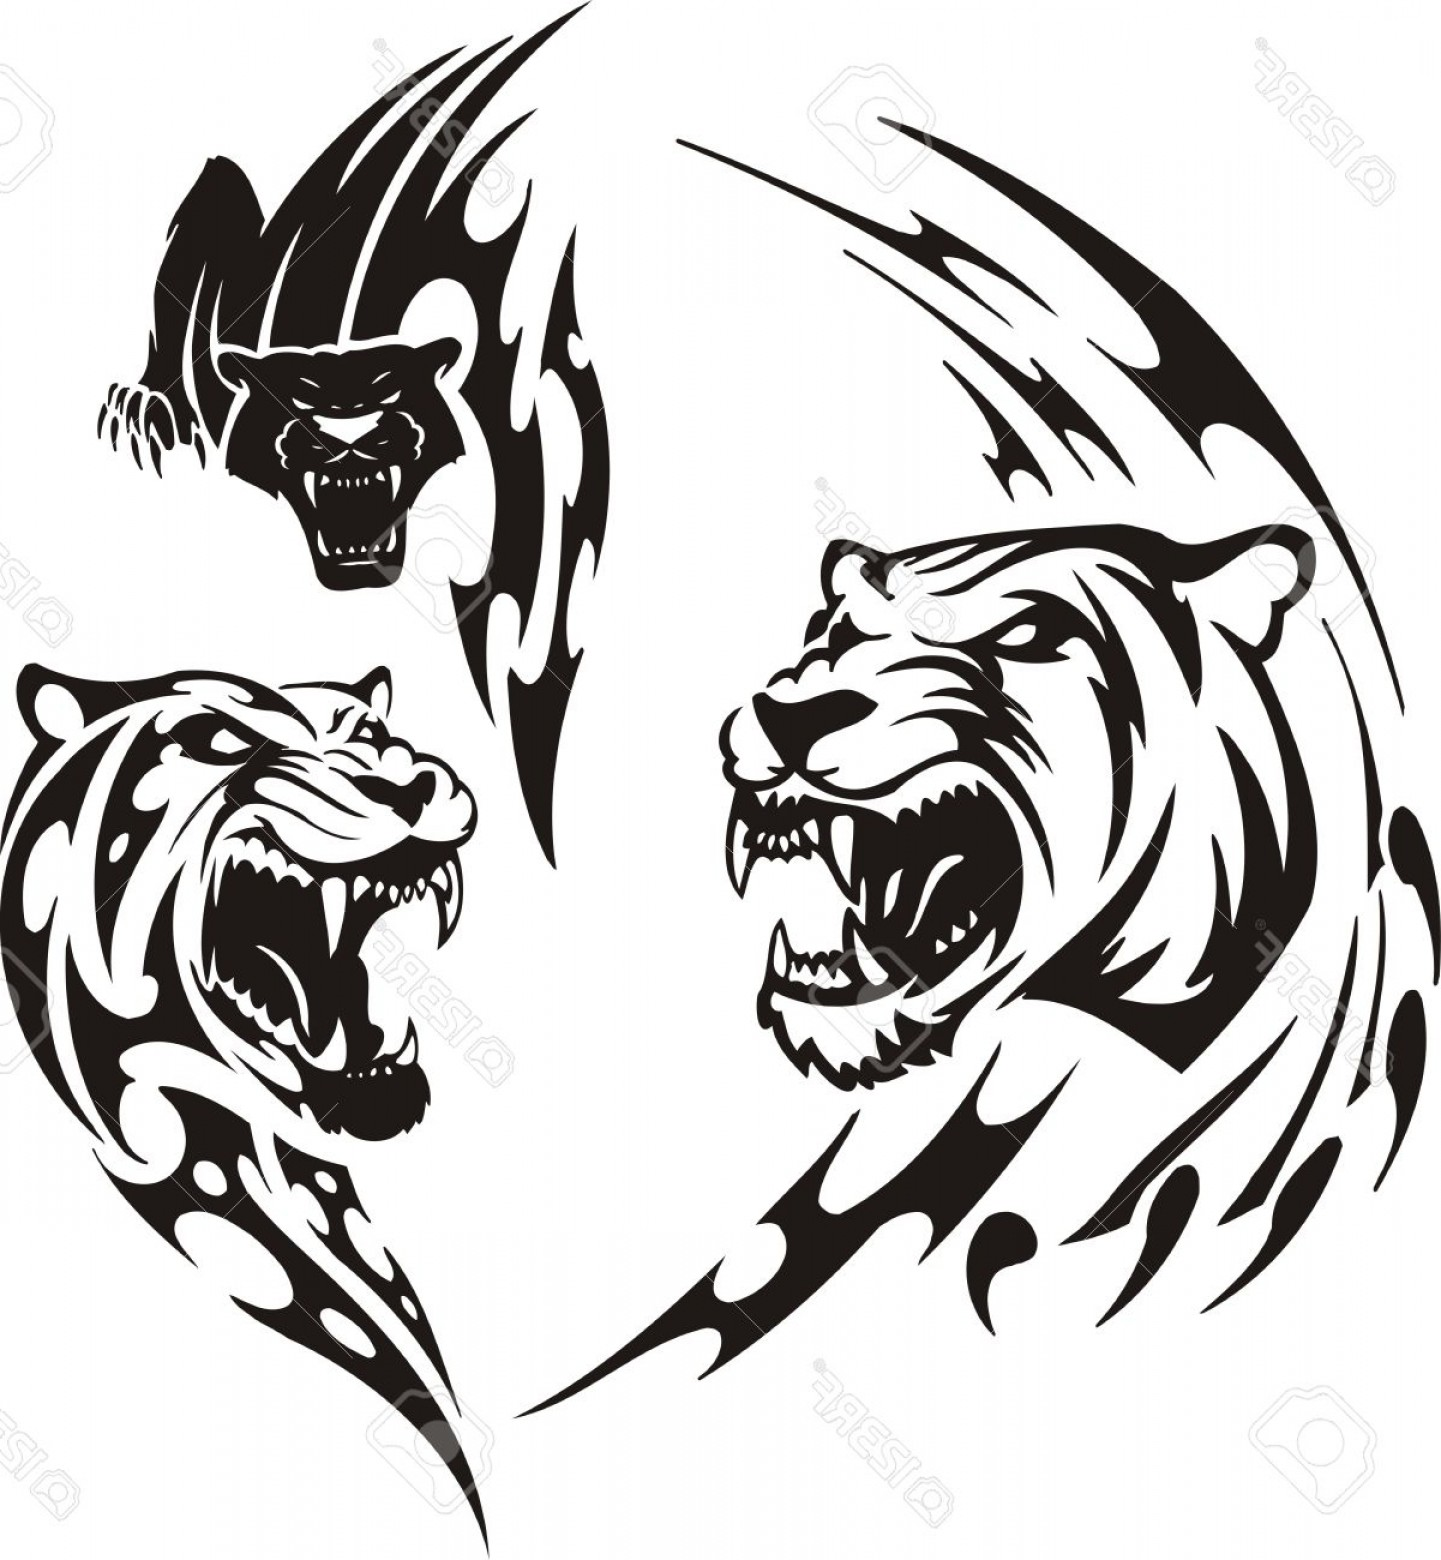 Panther Vector at GetDrawings com | Free for personal use